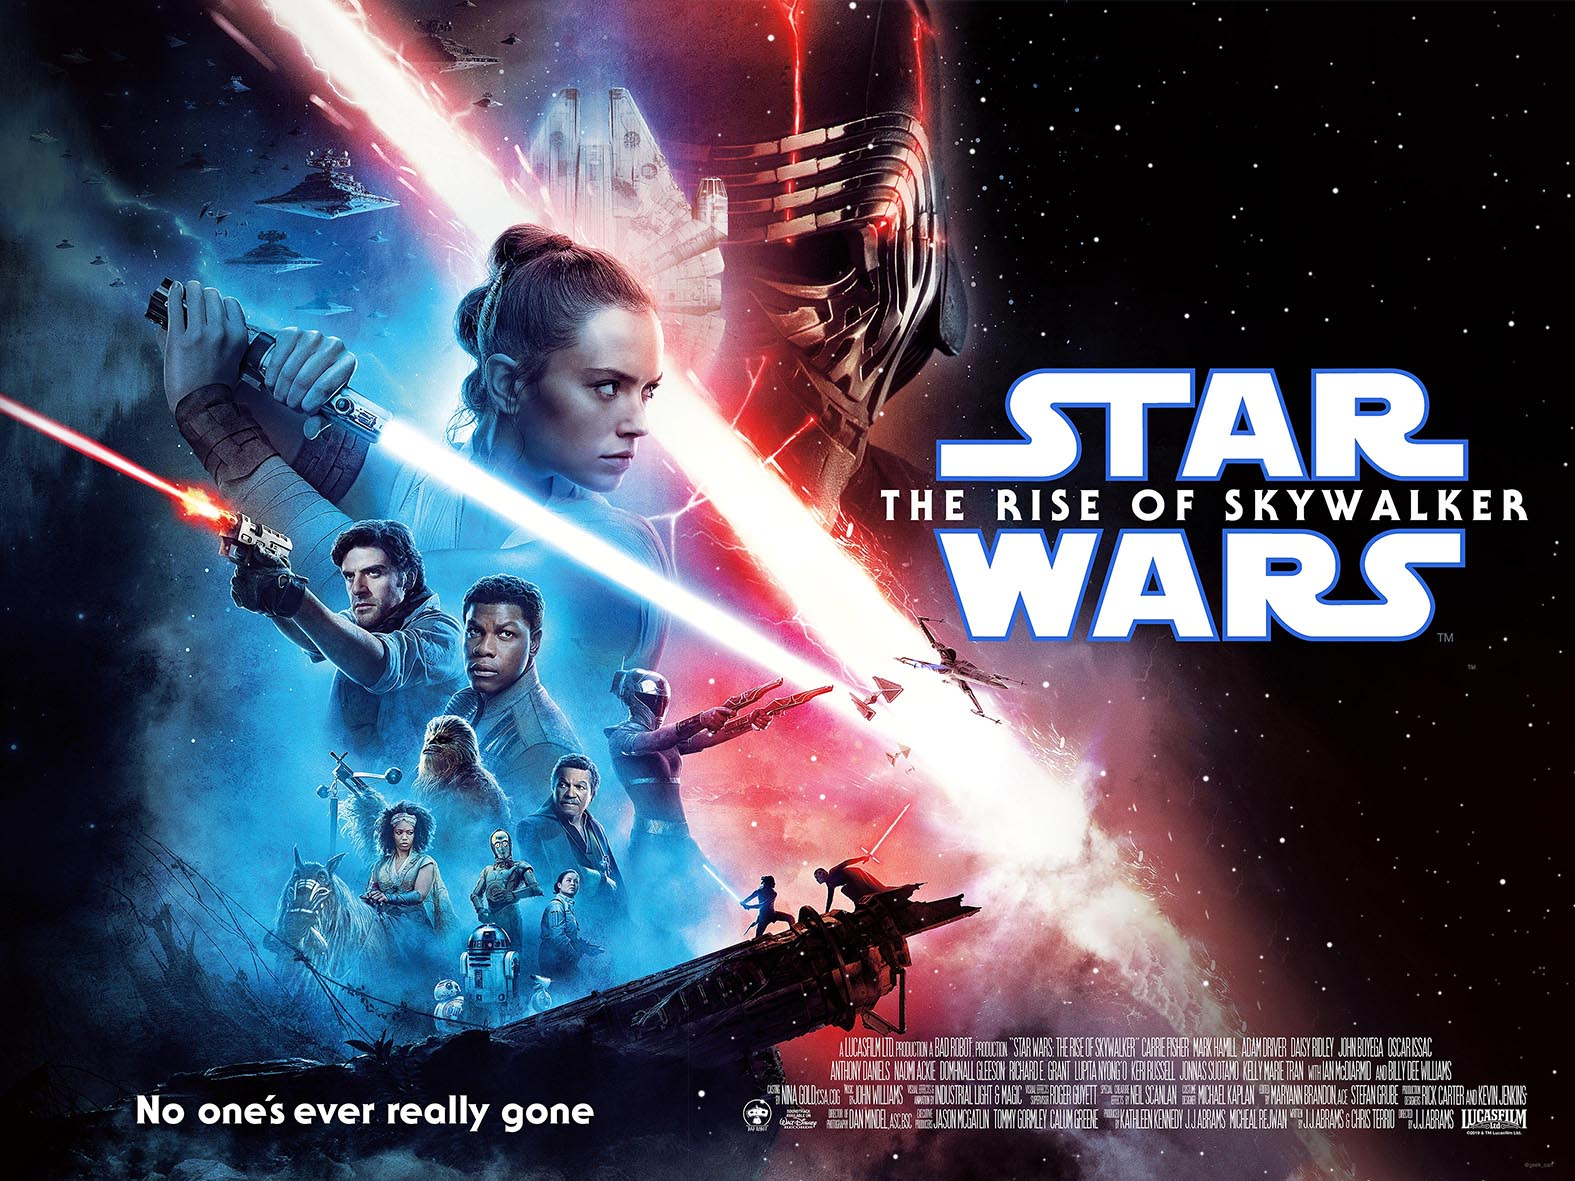 Star Wars The Rise of Skywalker poster « MyConfinedSpace